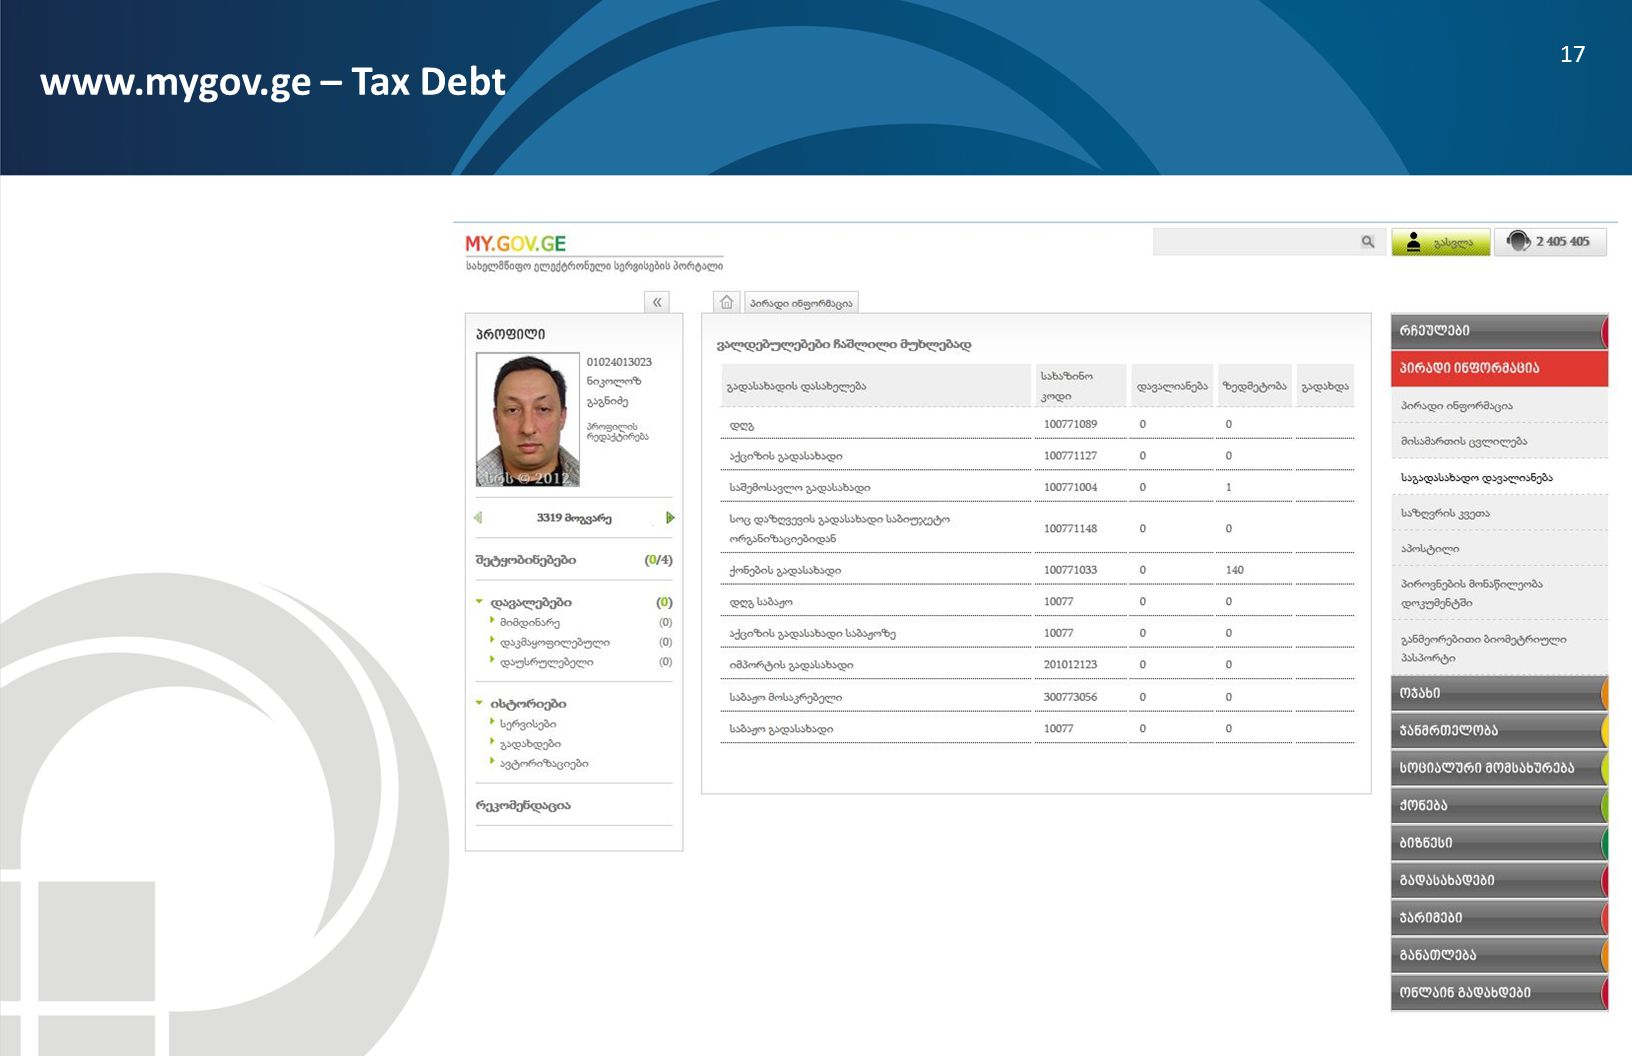 www.mygov.ge – Tax Debt